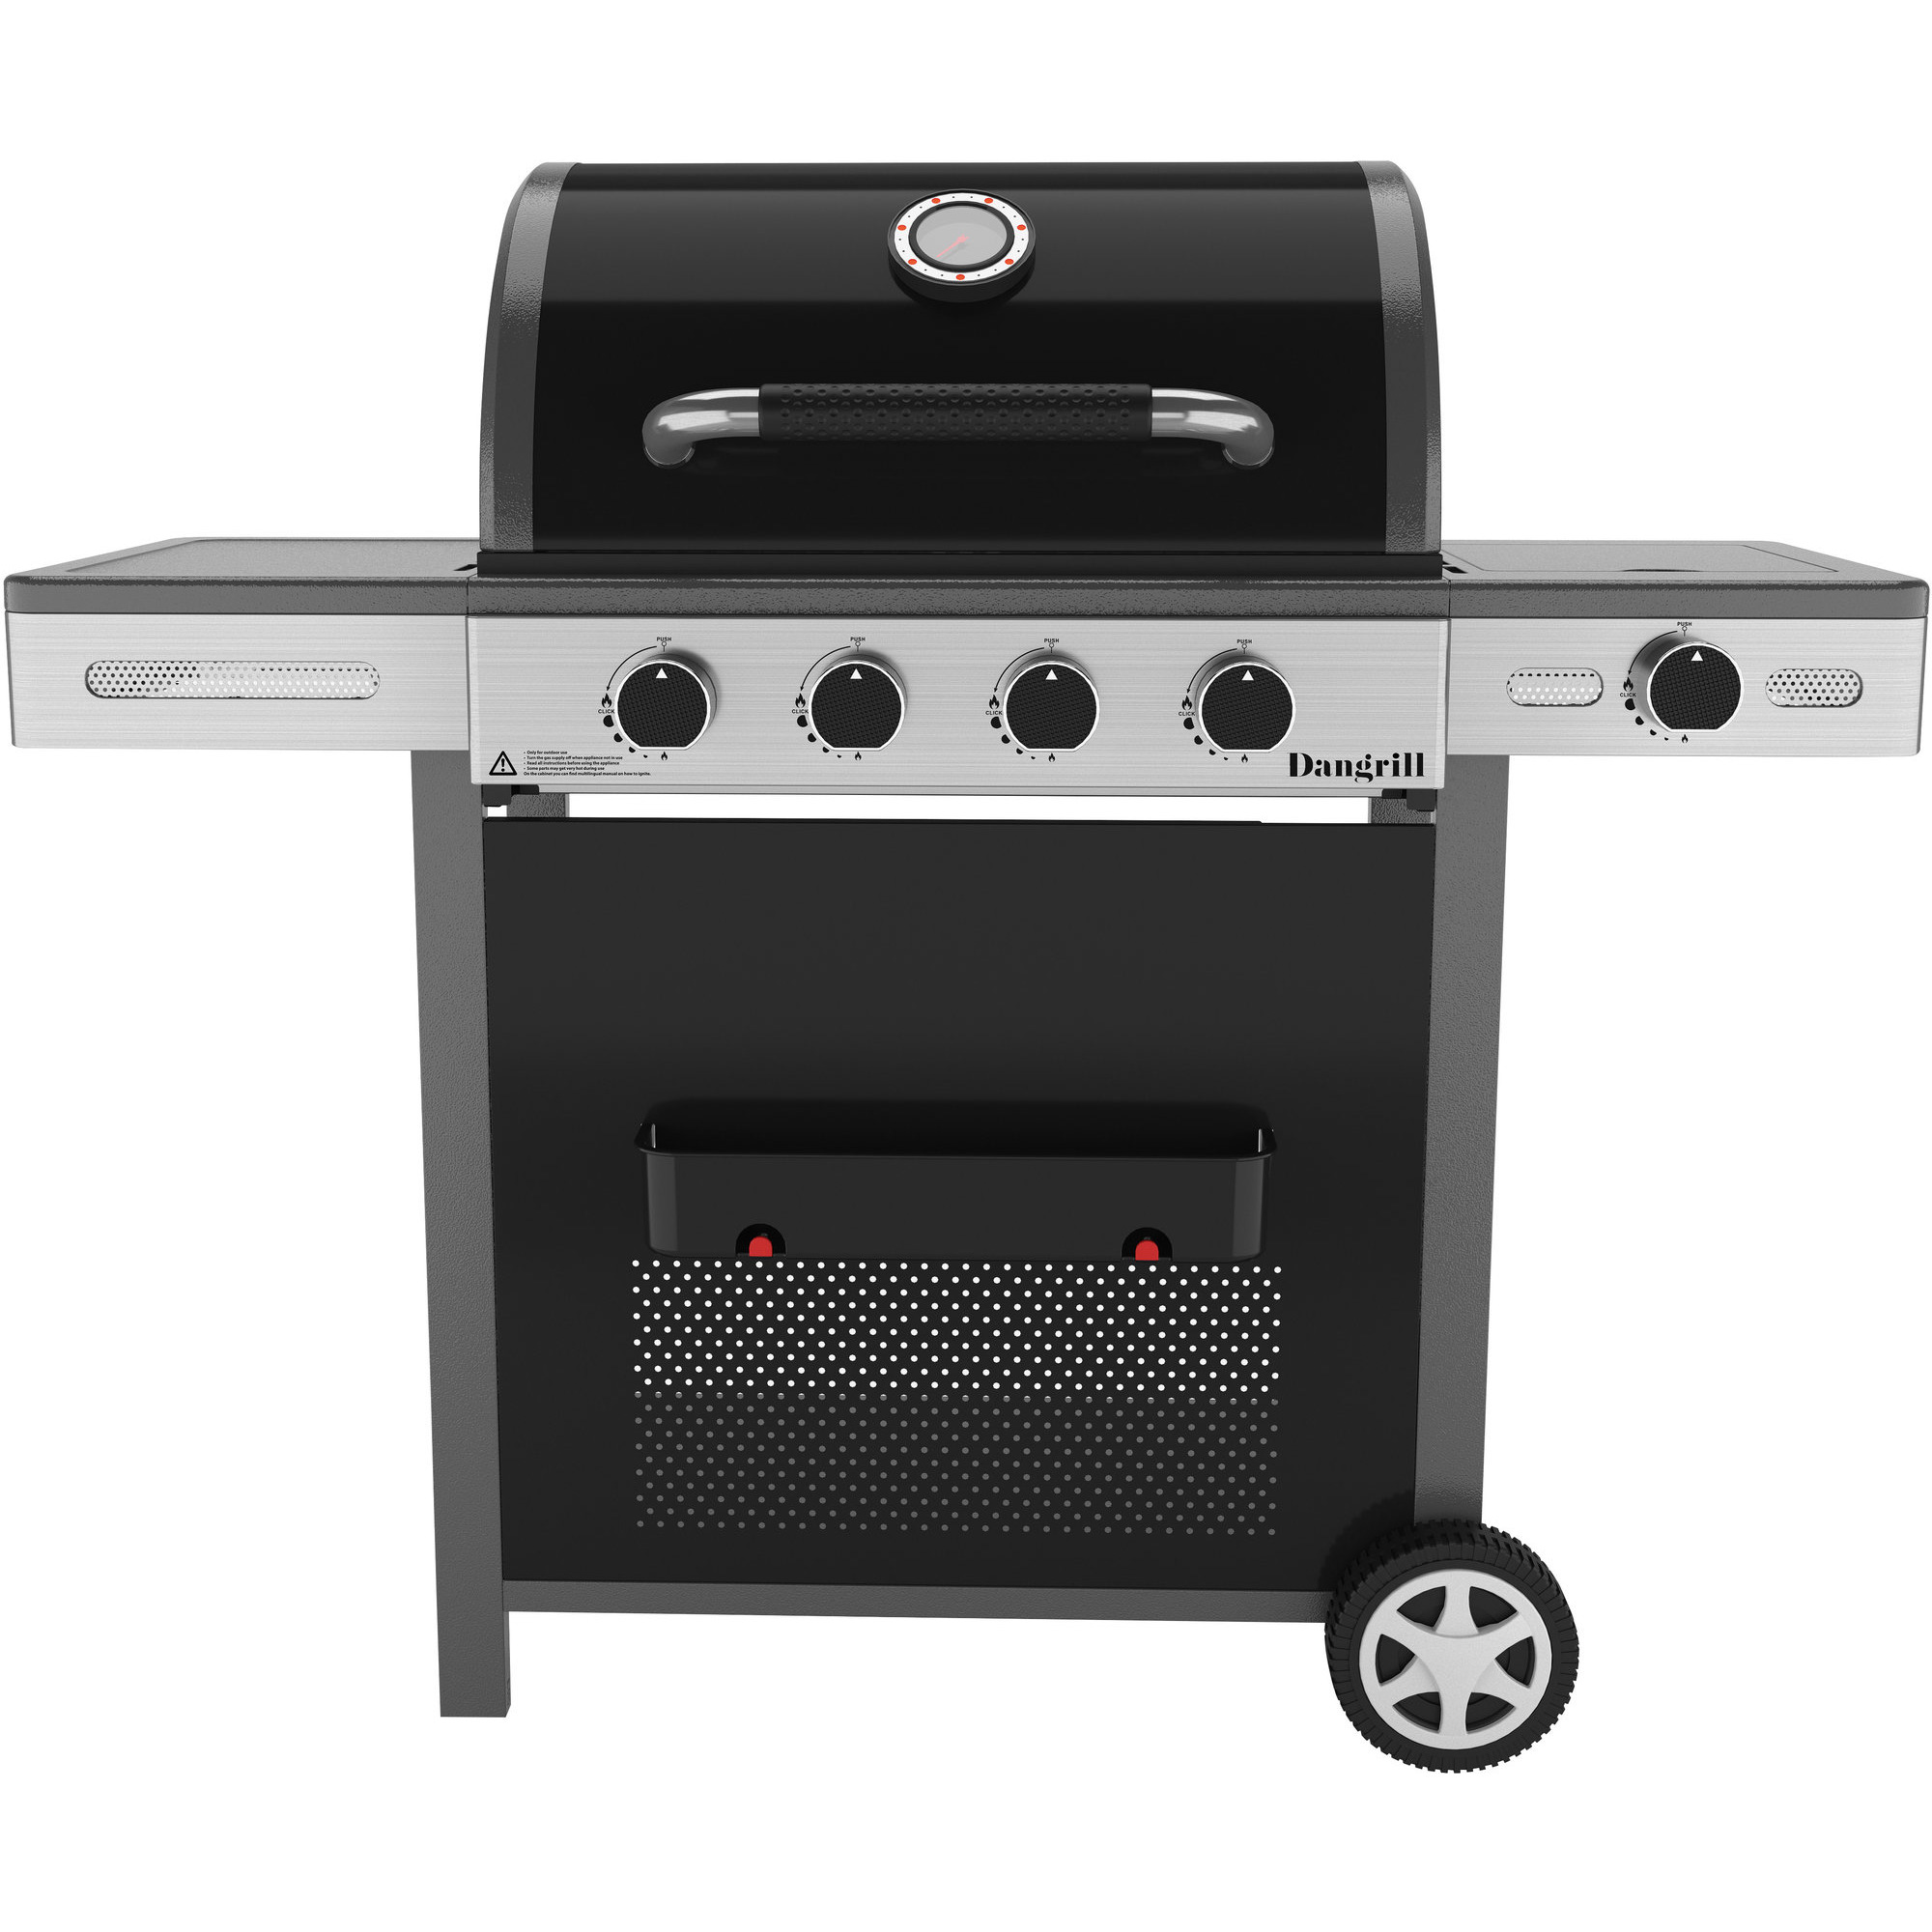 Dangrill Thor 410 PS V2.0 gasolgrill